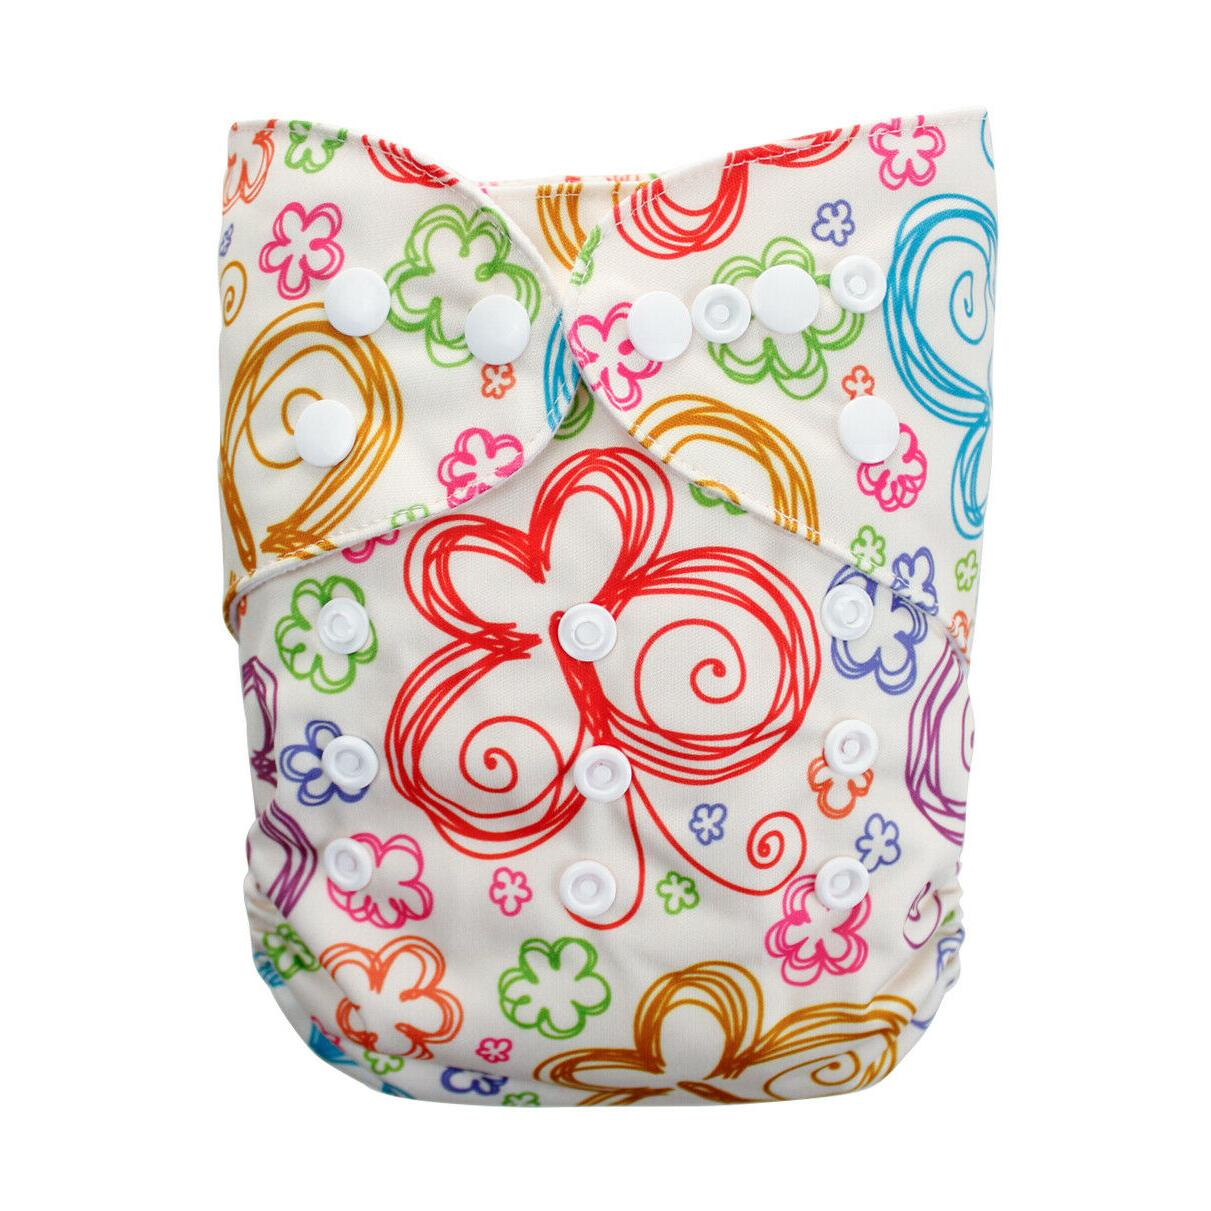 Cathybaby Reusable Washable Baby Cloth Diapers Pocket With Optional Insert